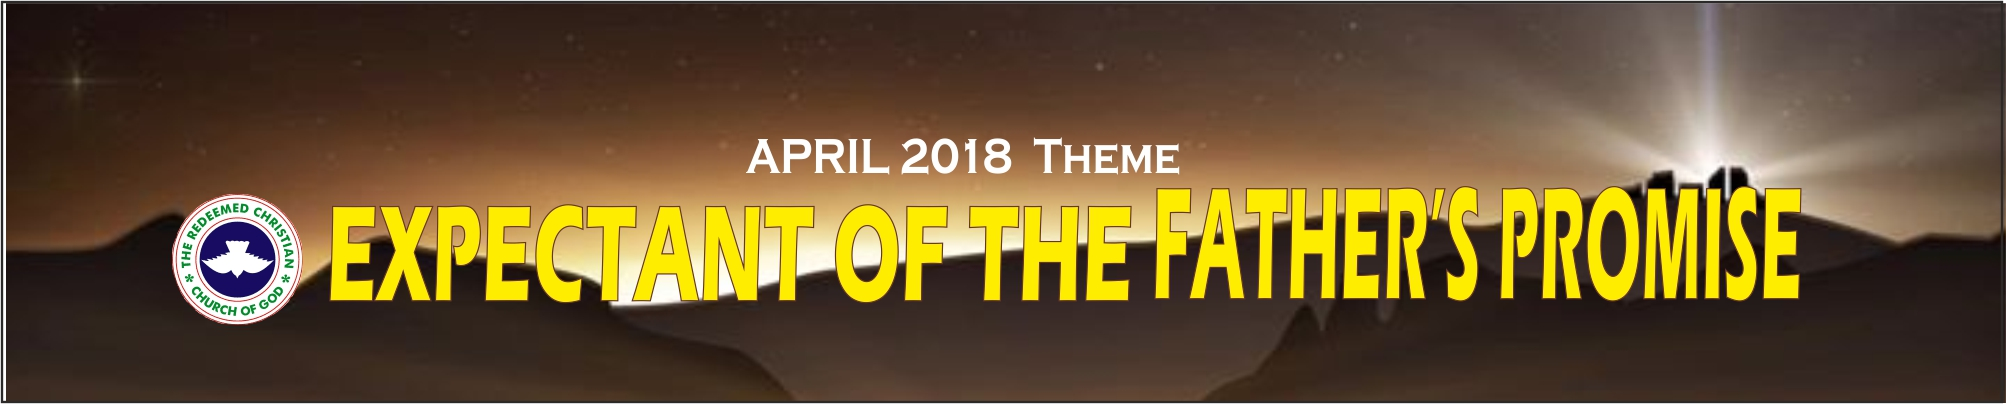 April 2018 Theme – Expectant of The Father's Promise